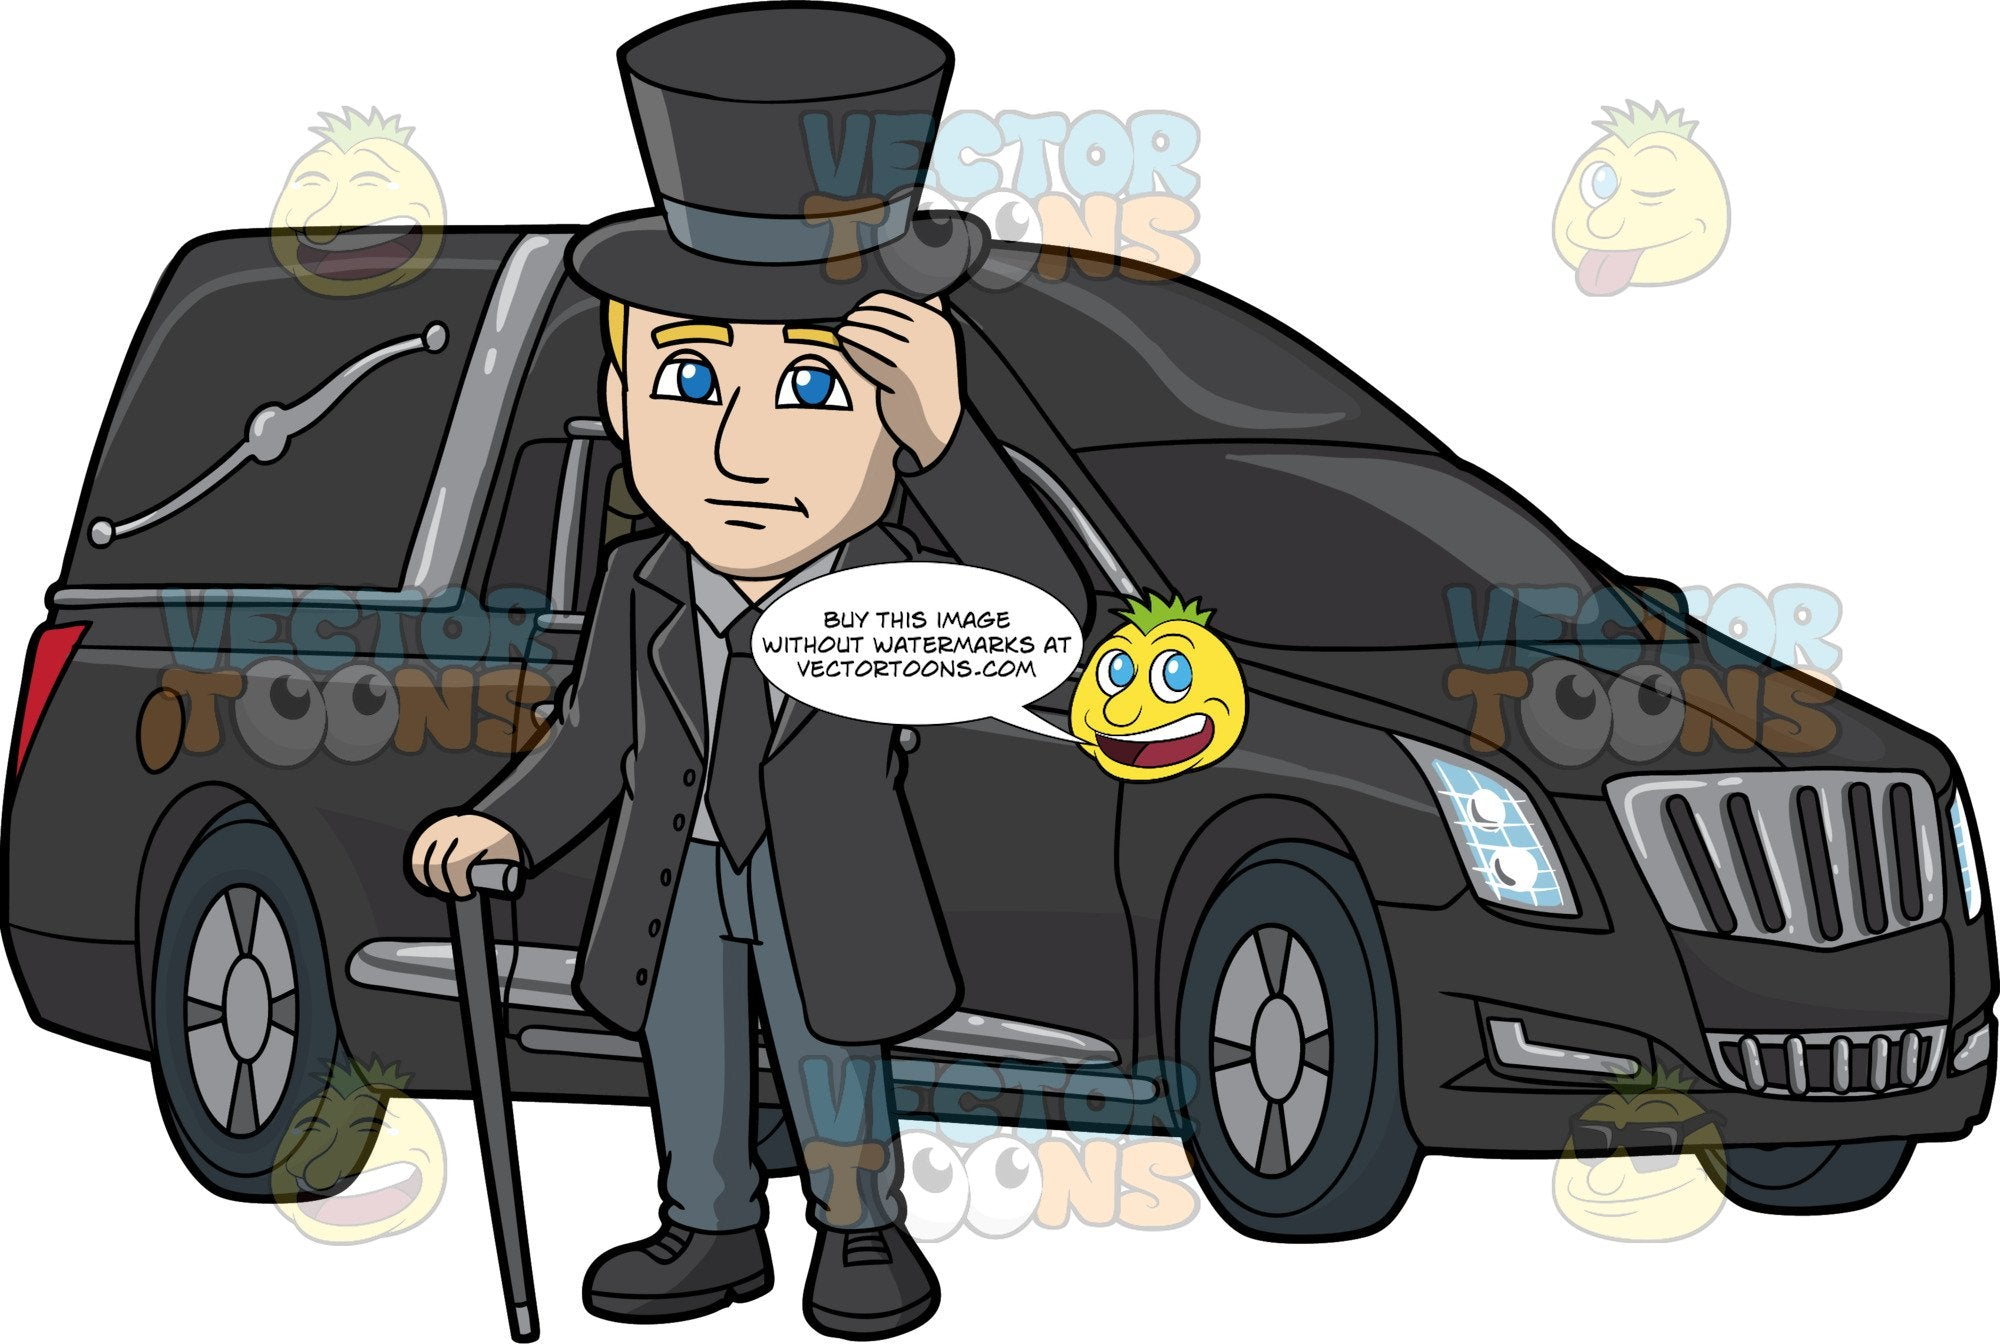 A Sympathetic Male Funeral Director Beside A Hearse. A man with blonde hair, wearing a black trench coat, necktie, gray dress shirt, black shoes, bluish gray pants, tips the end of his black top hat while holding a black cane in his right hand, as he stands at the side of a black hearse